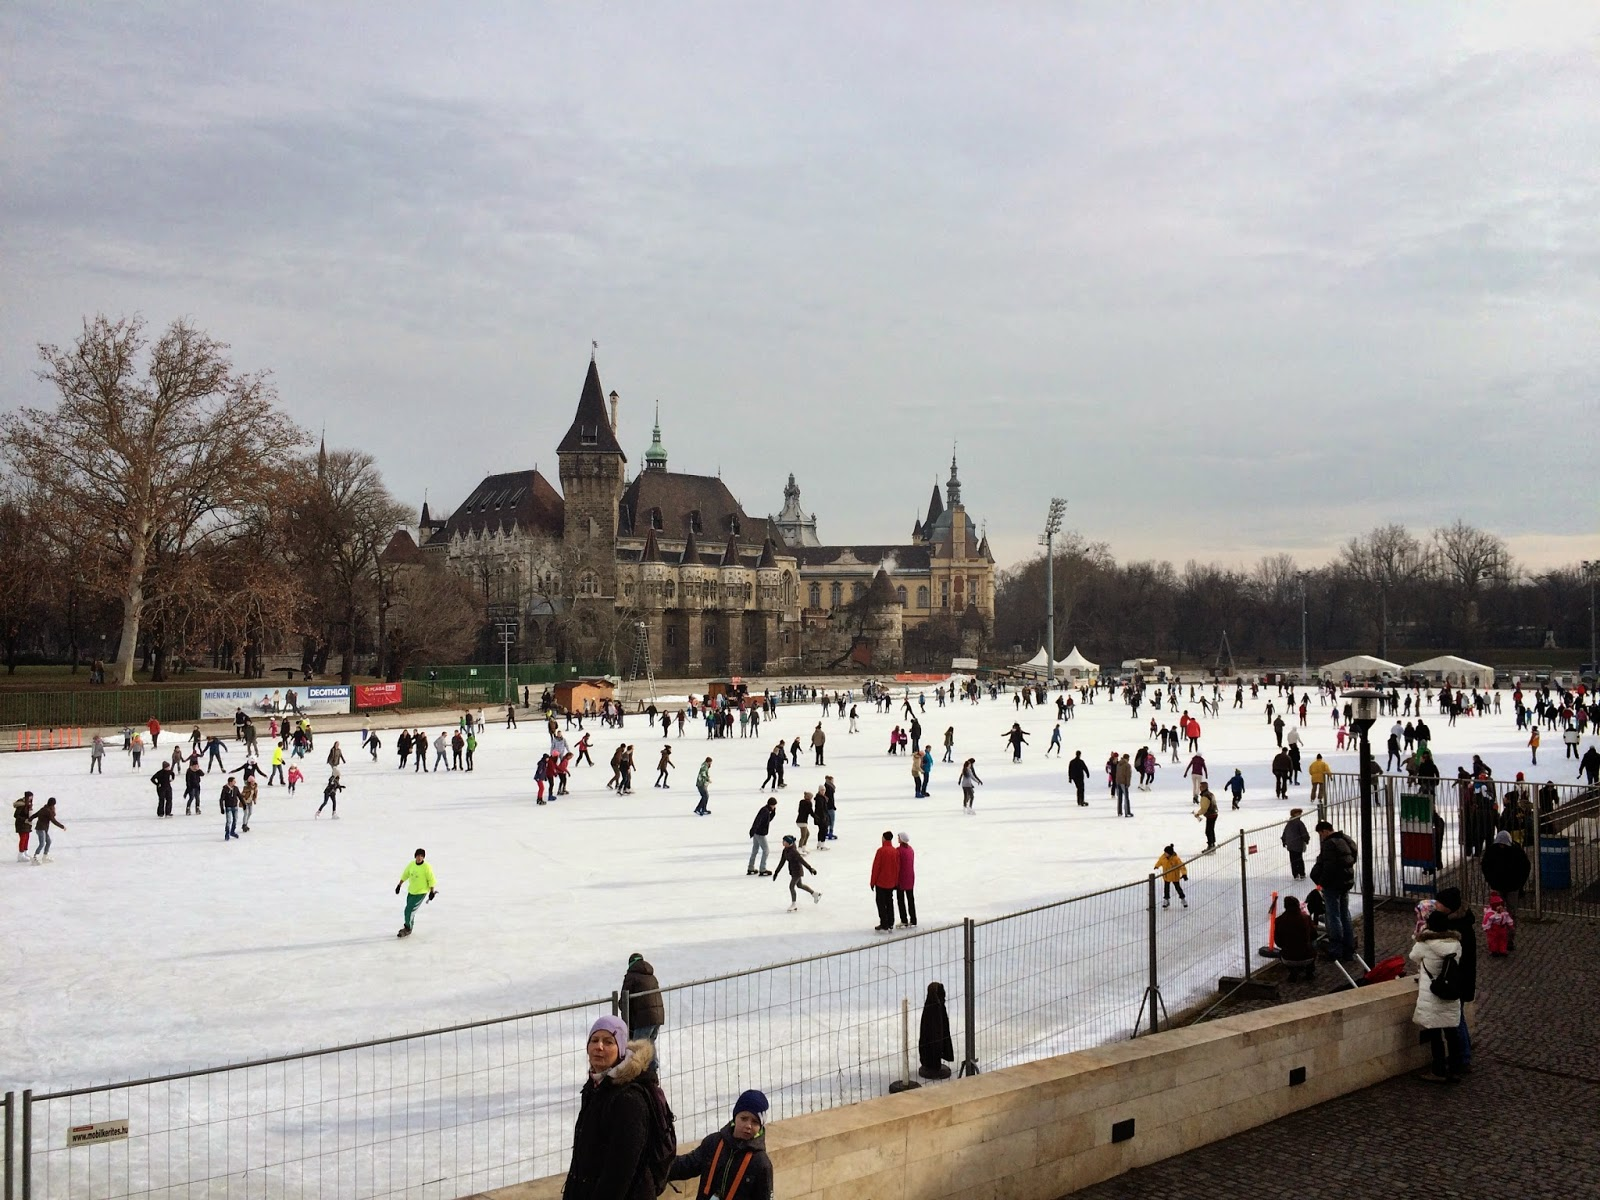 Budapest outdoor ice rink - near Szechenyi thermal spa baths